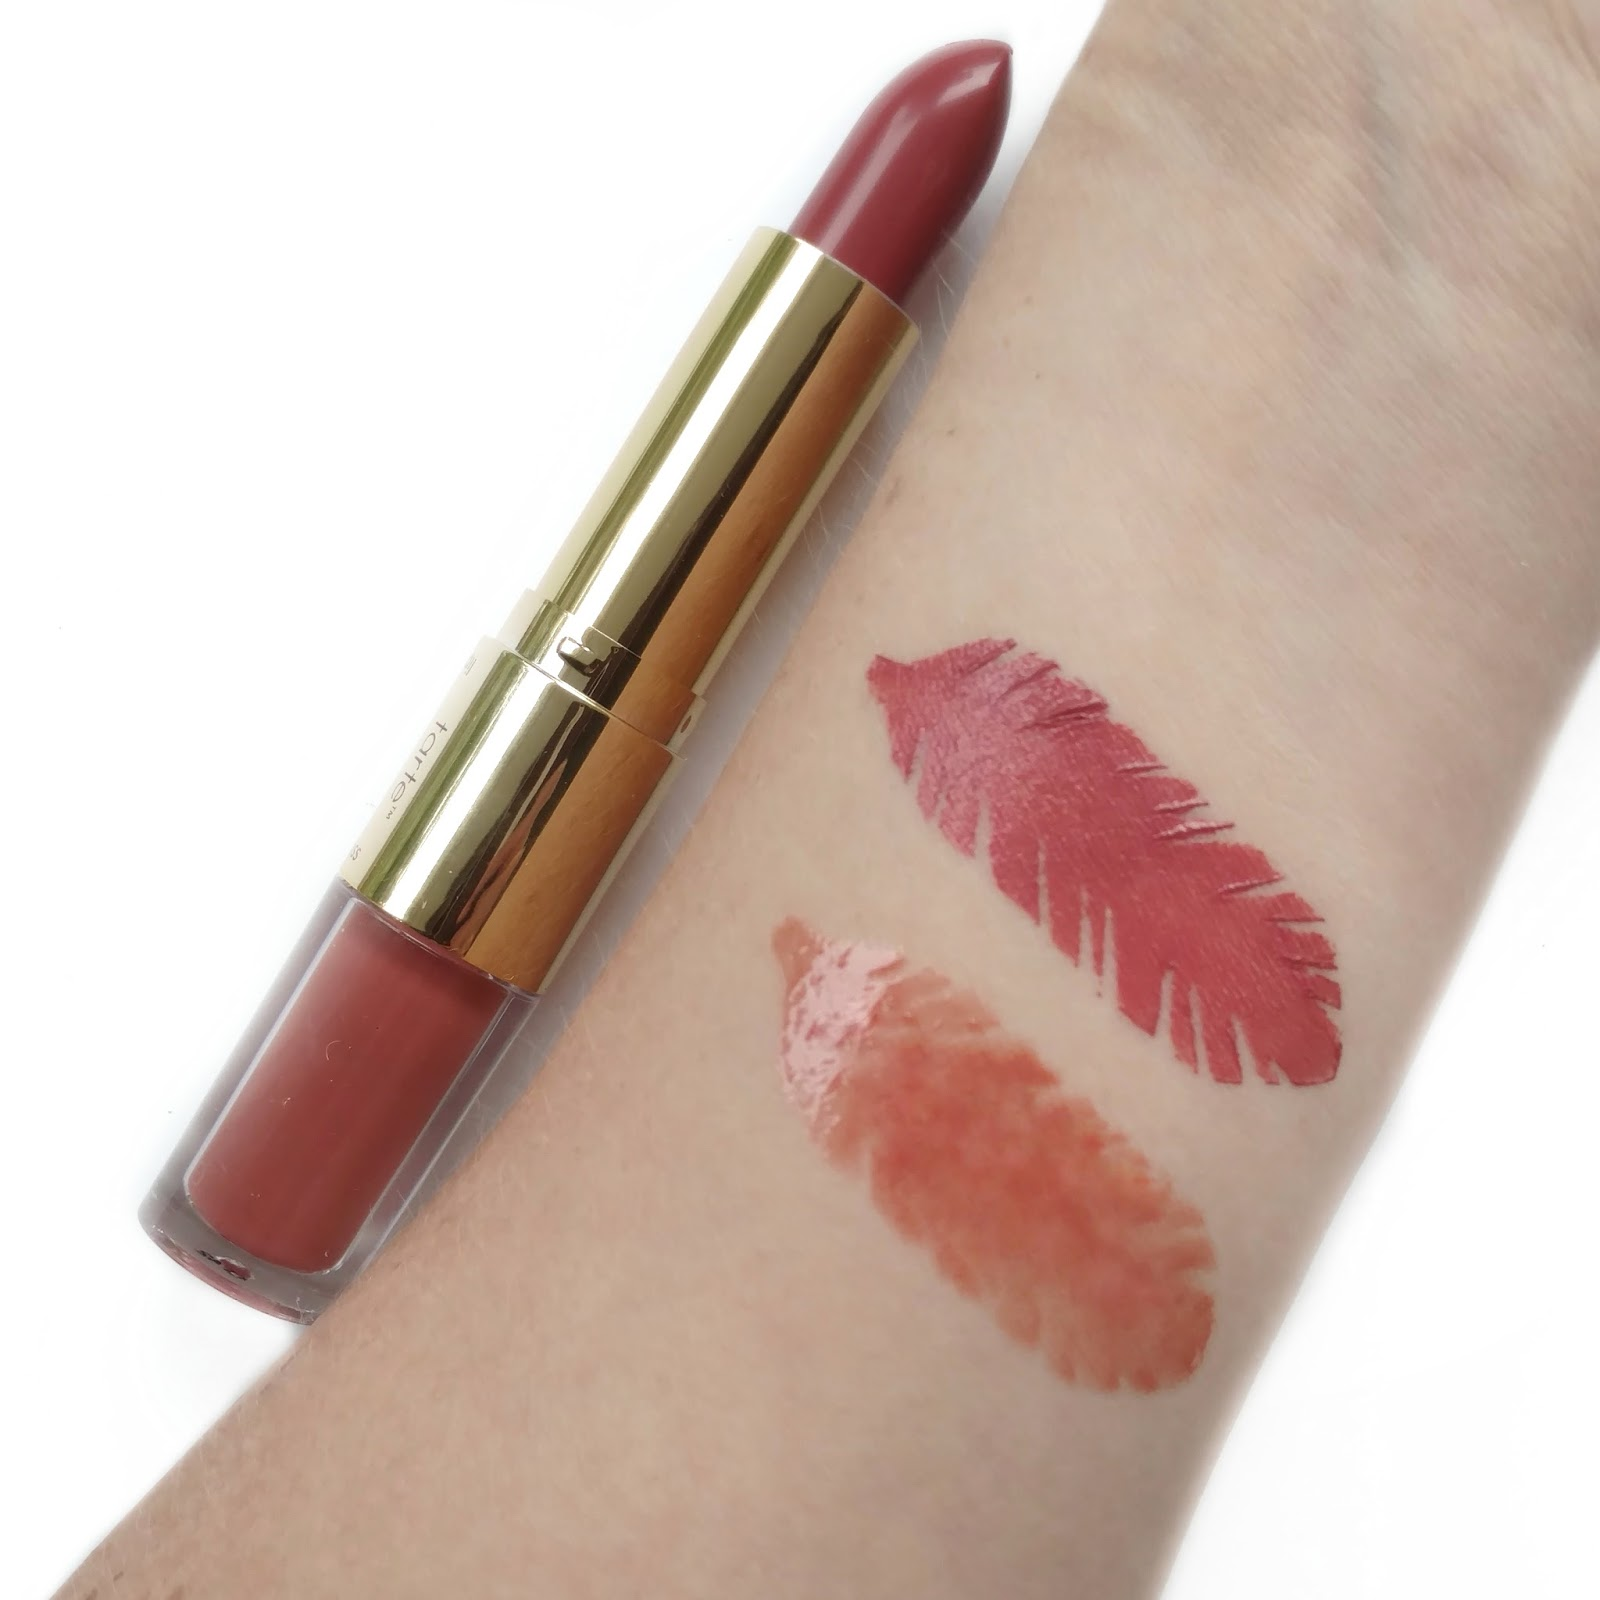 tarte lip sculptor in sass swatches